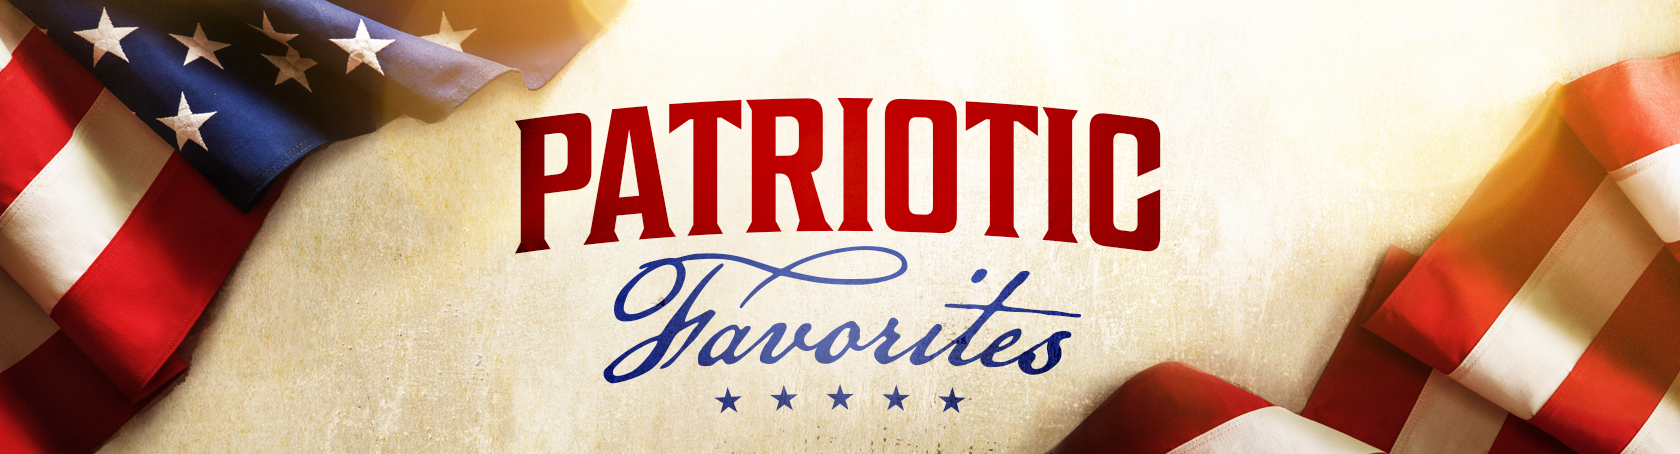 Patriotic Favorites